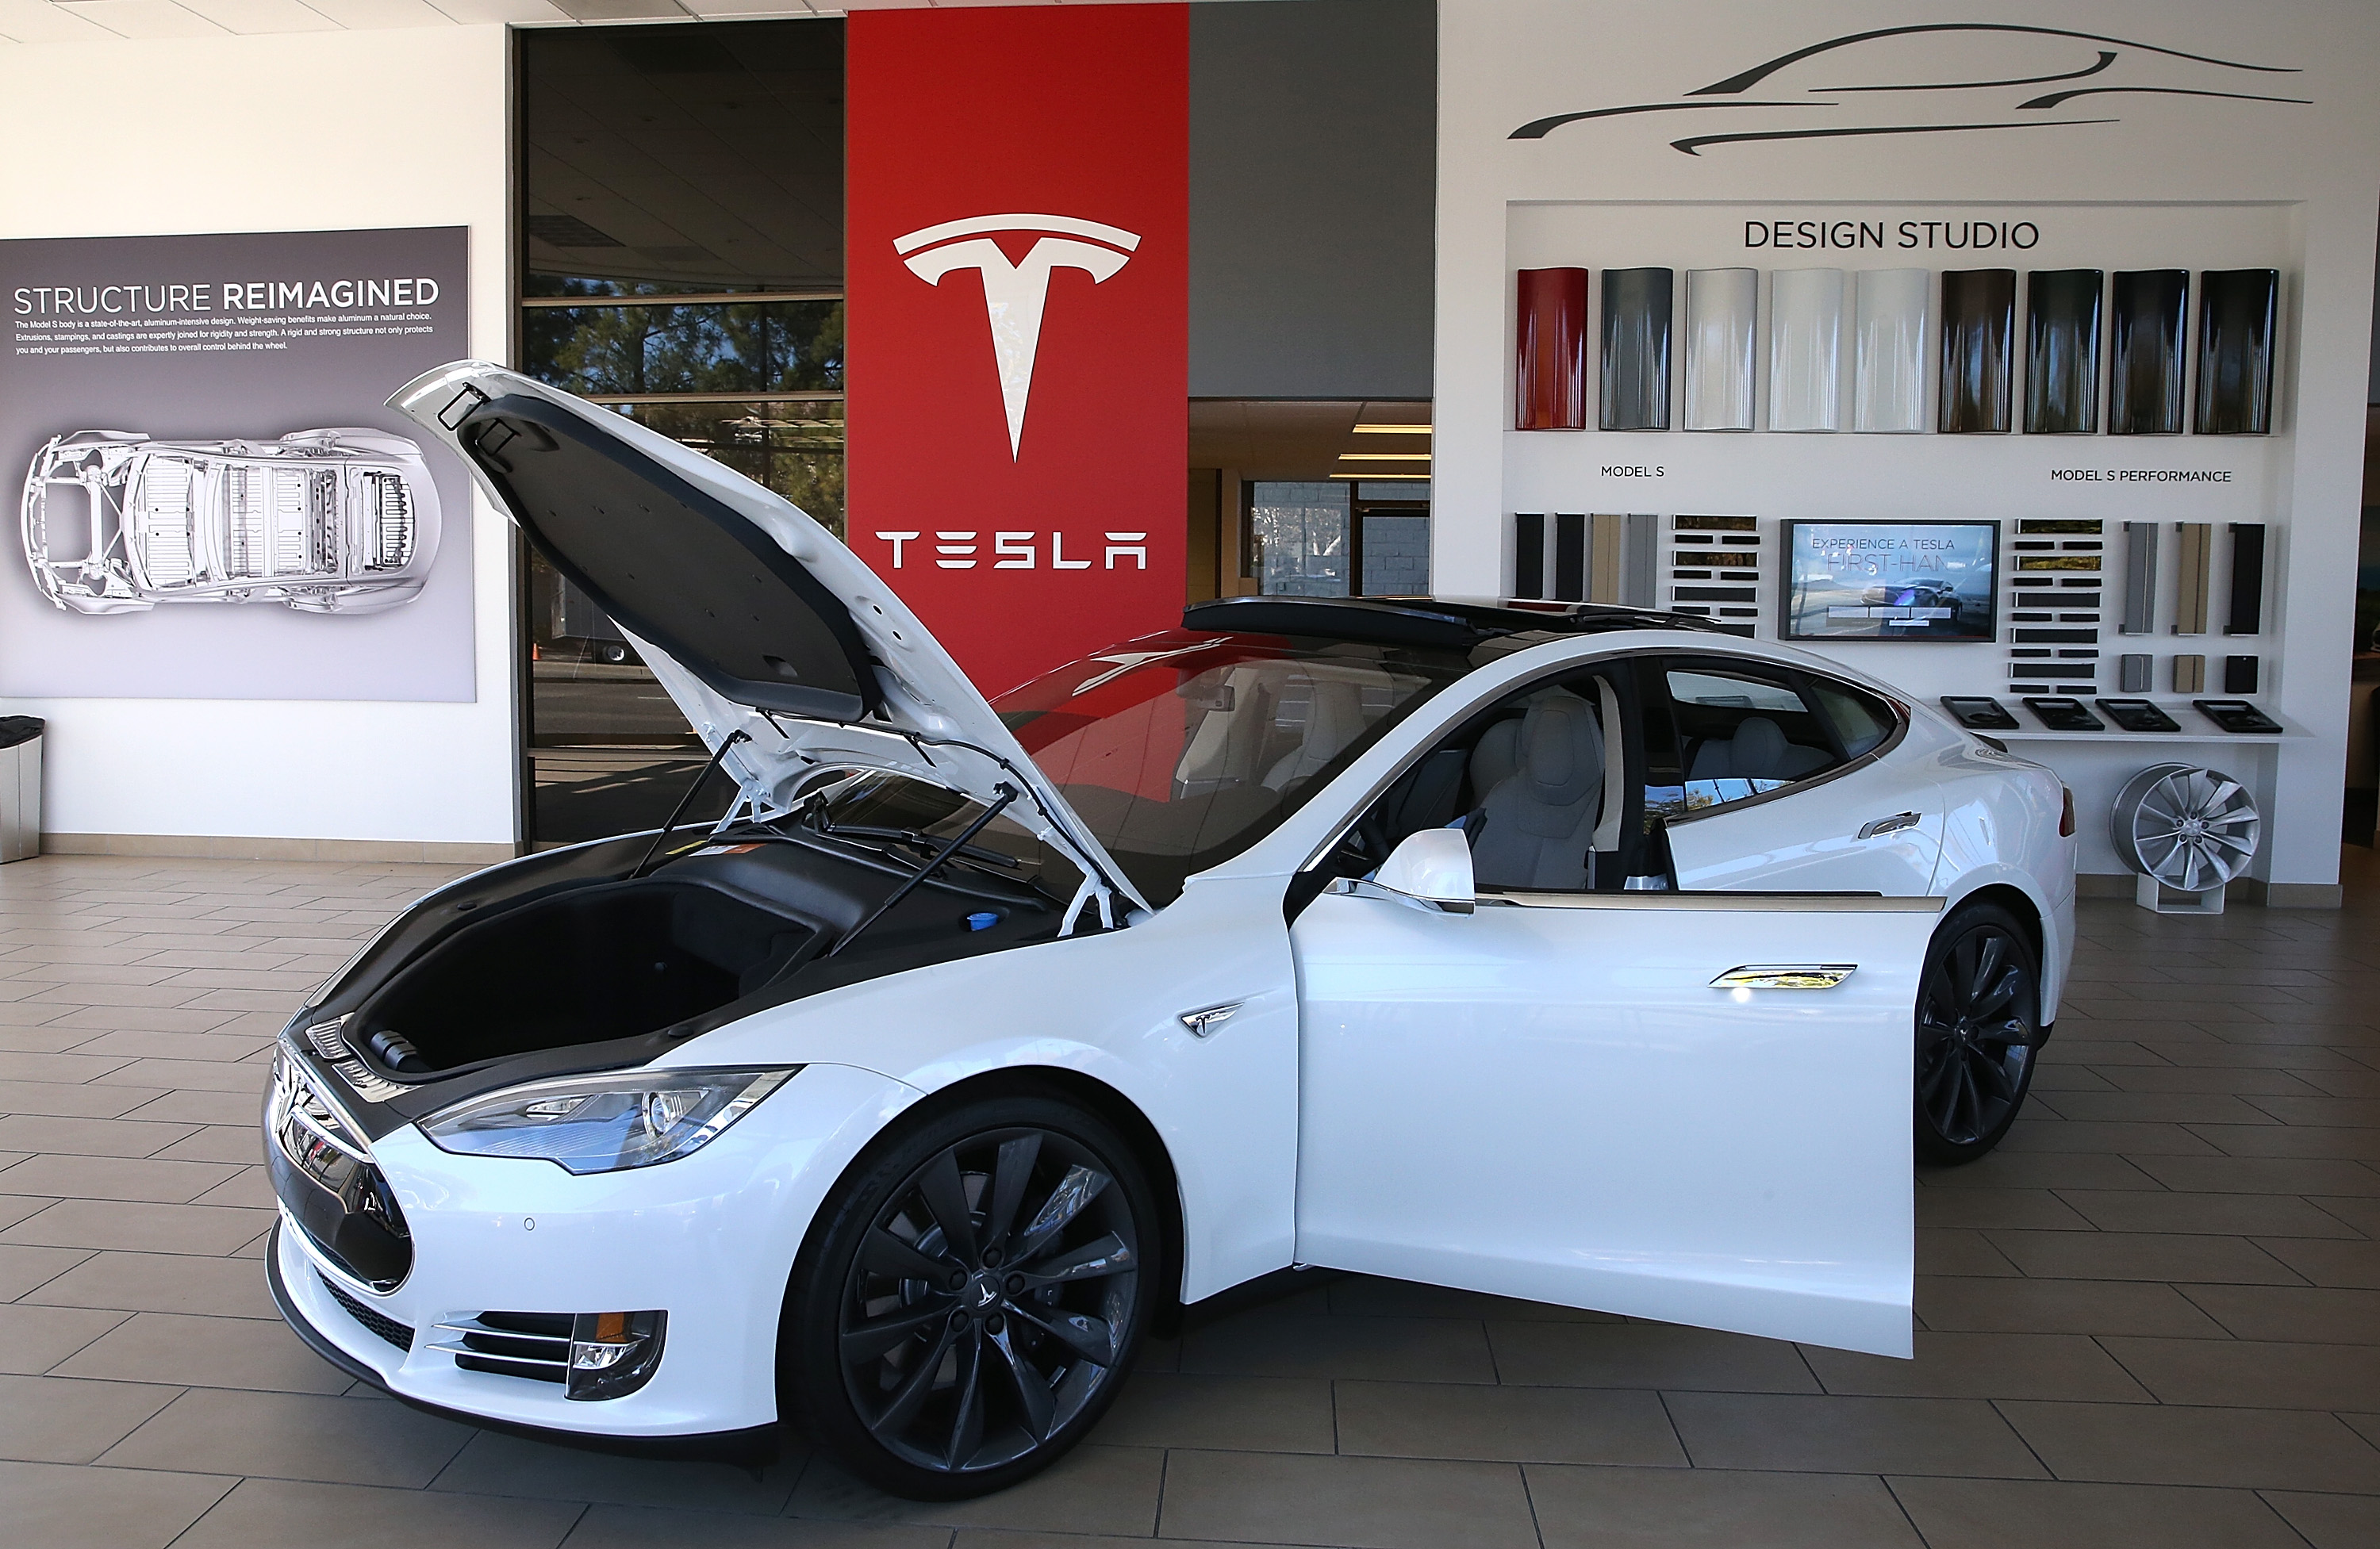 How Tesla Surped Gm And Ford To Become America S Most Valuable Car Company